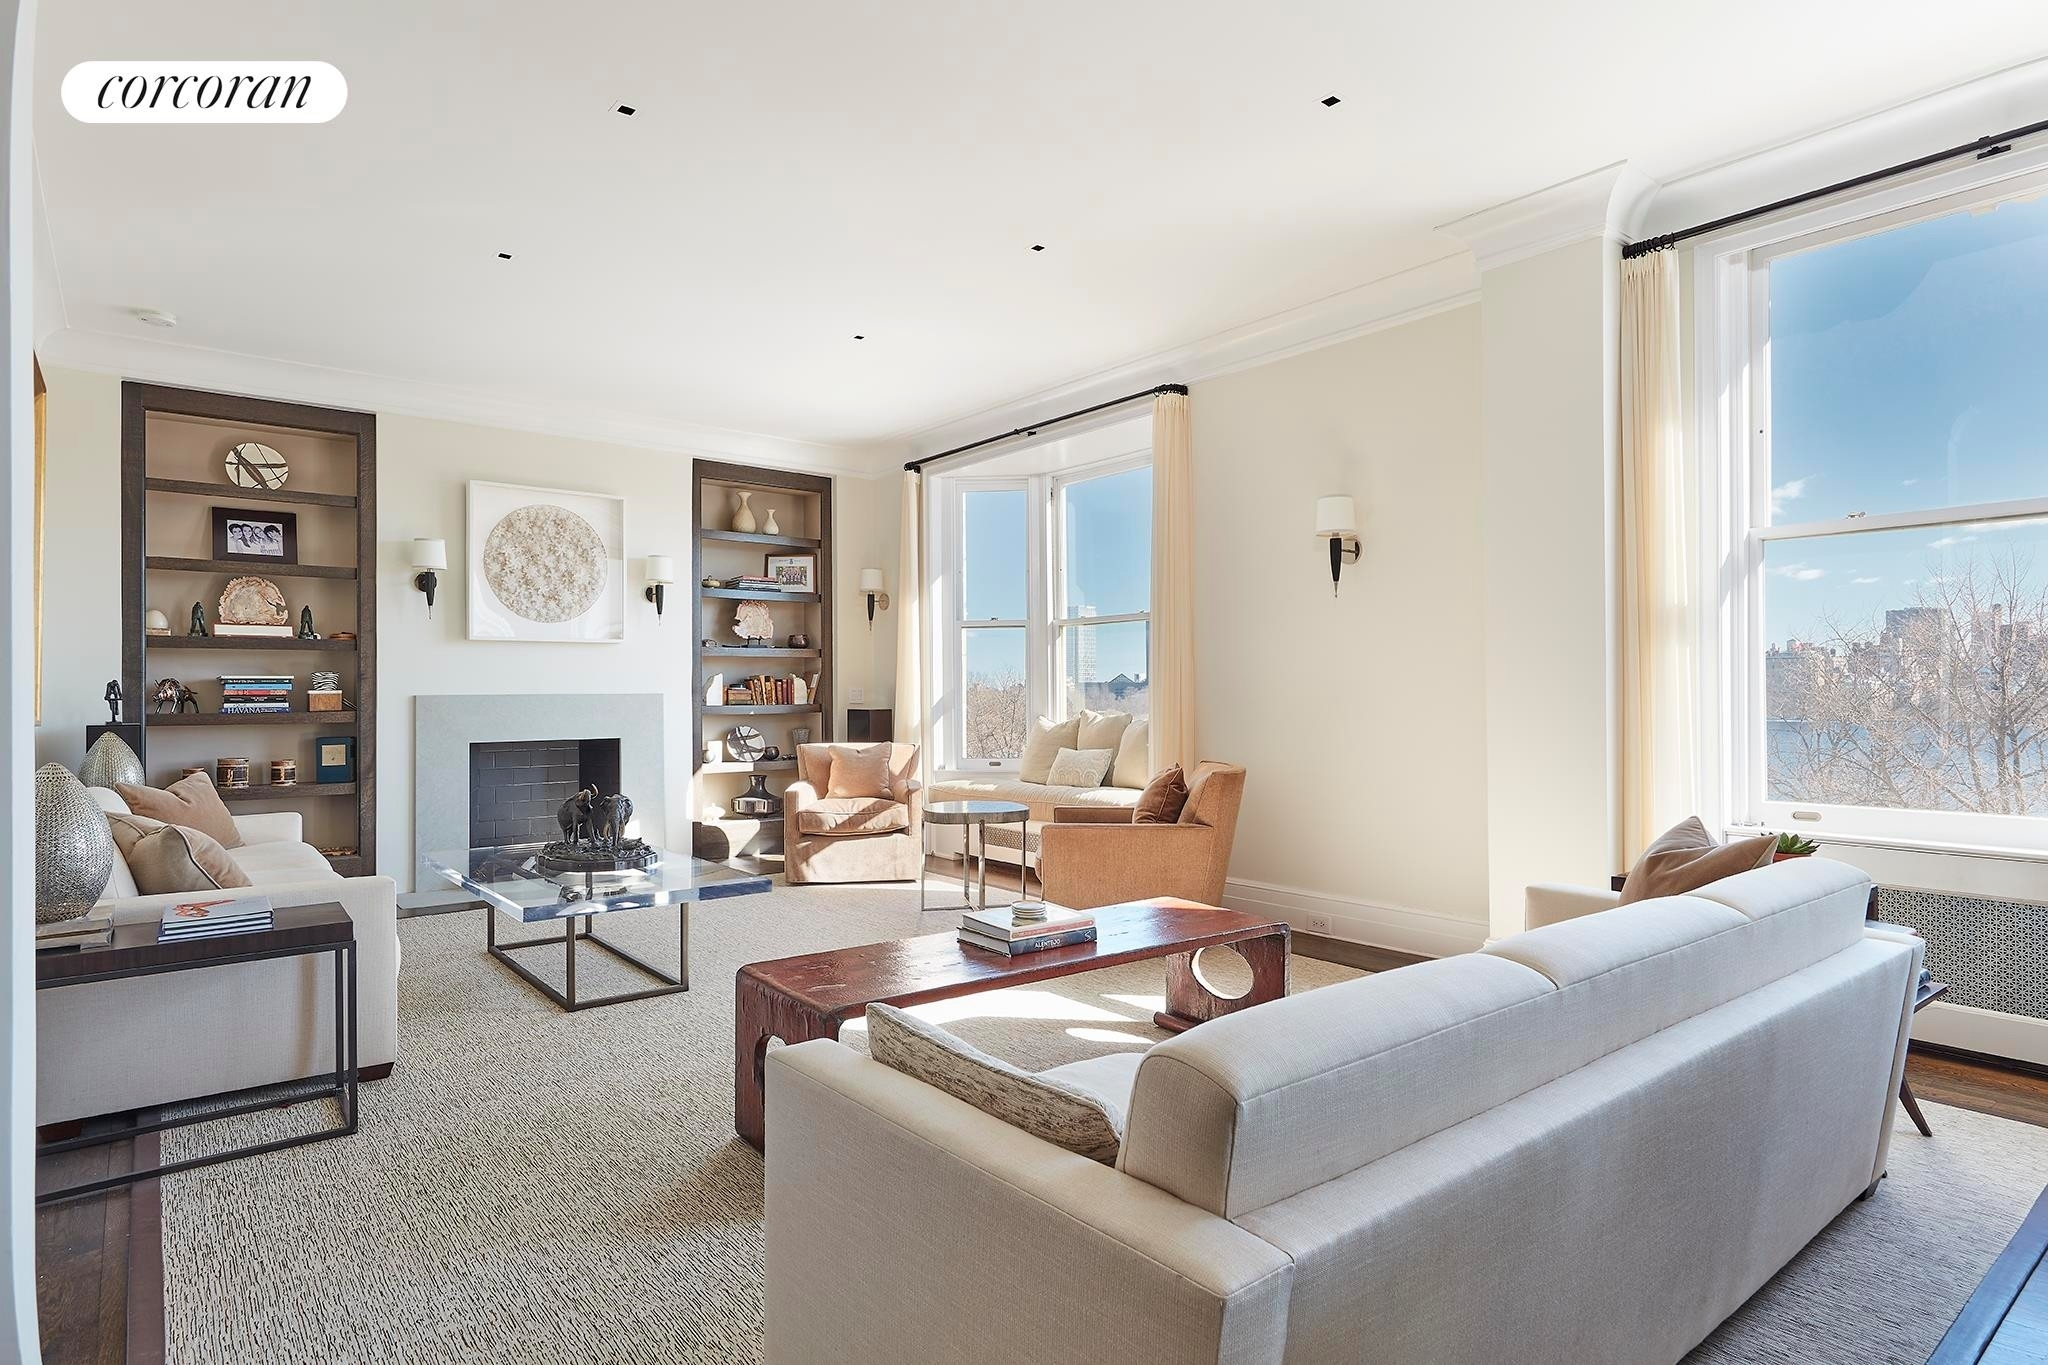 Property at St. Urban, 285 Central Park West, 7S Upper West Side, New York, NY 10024